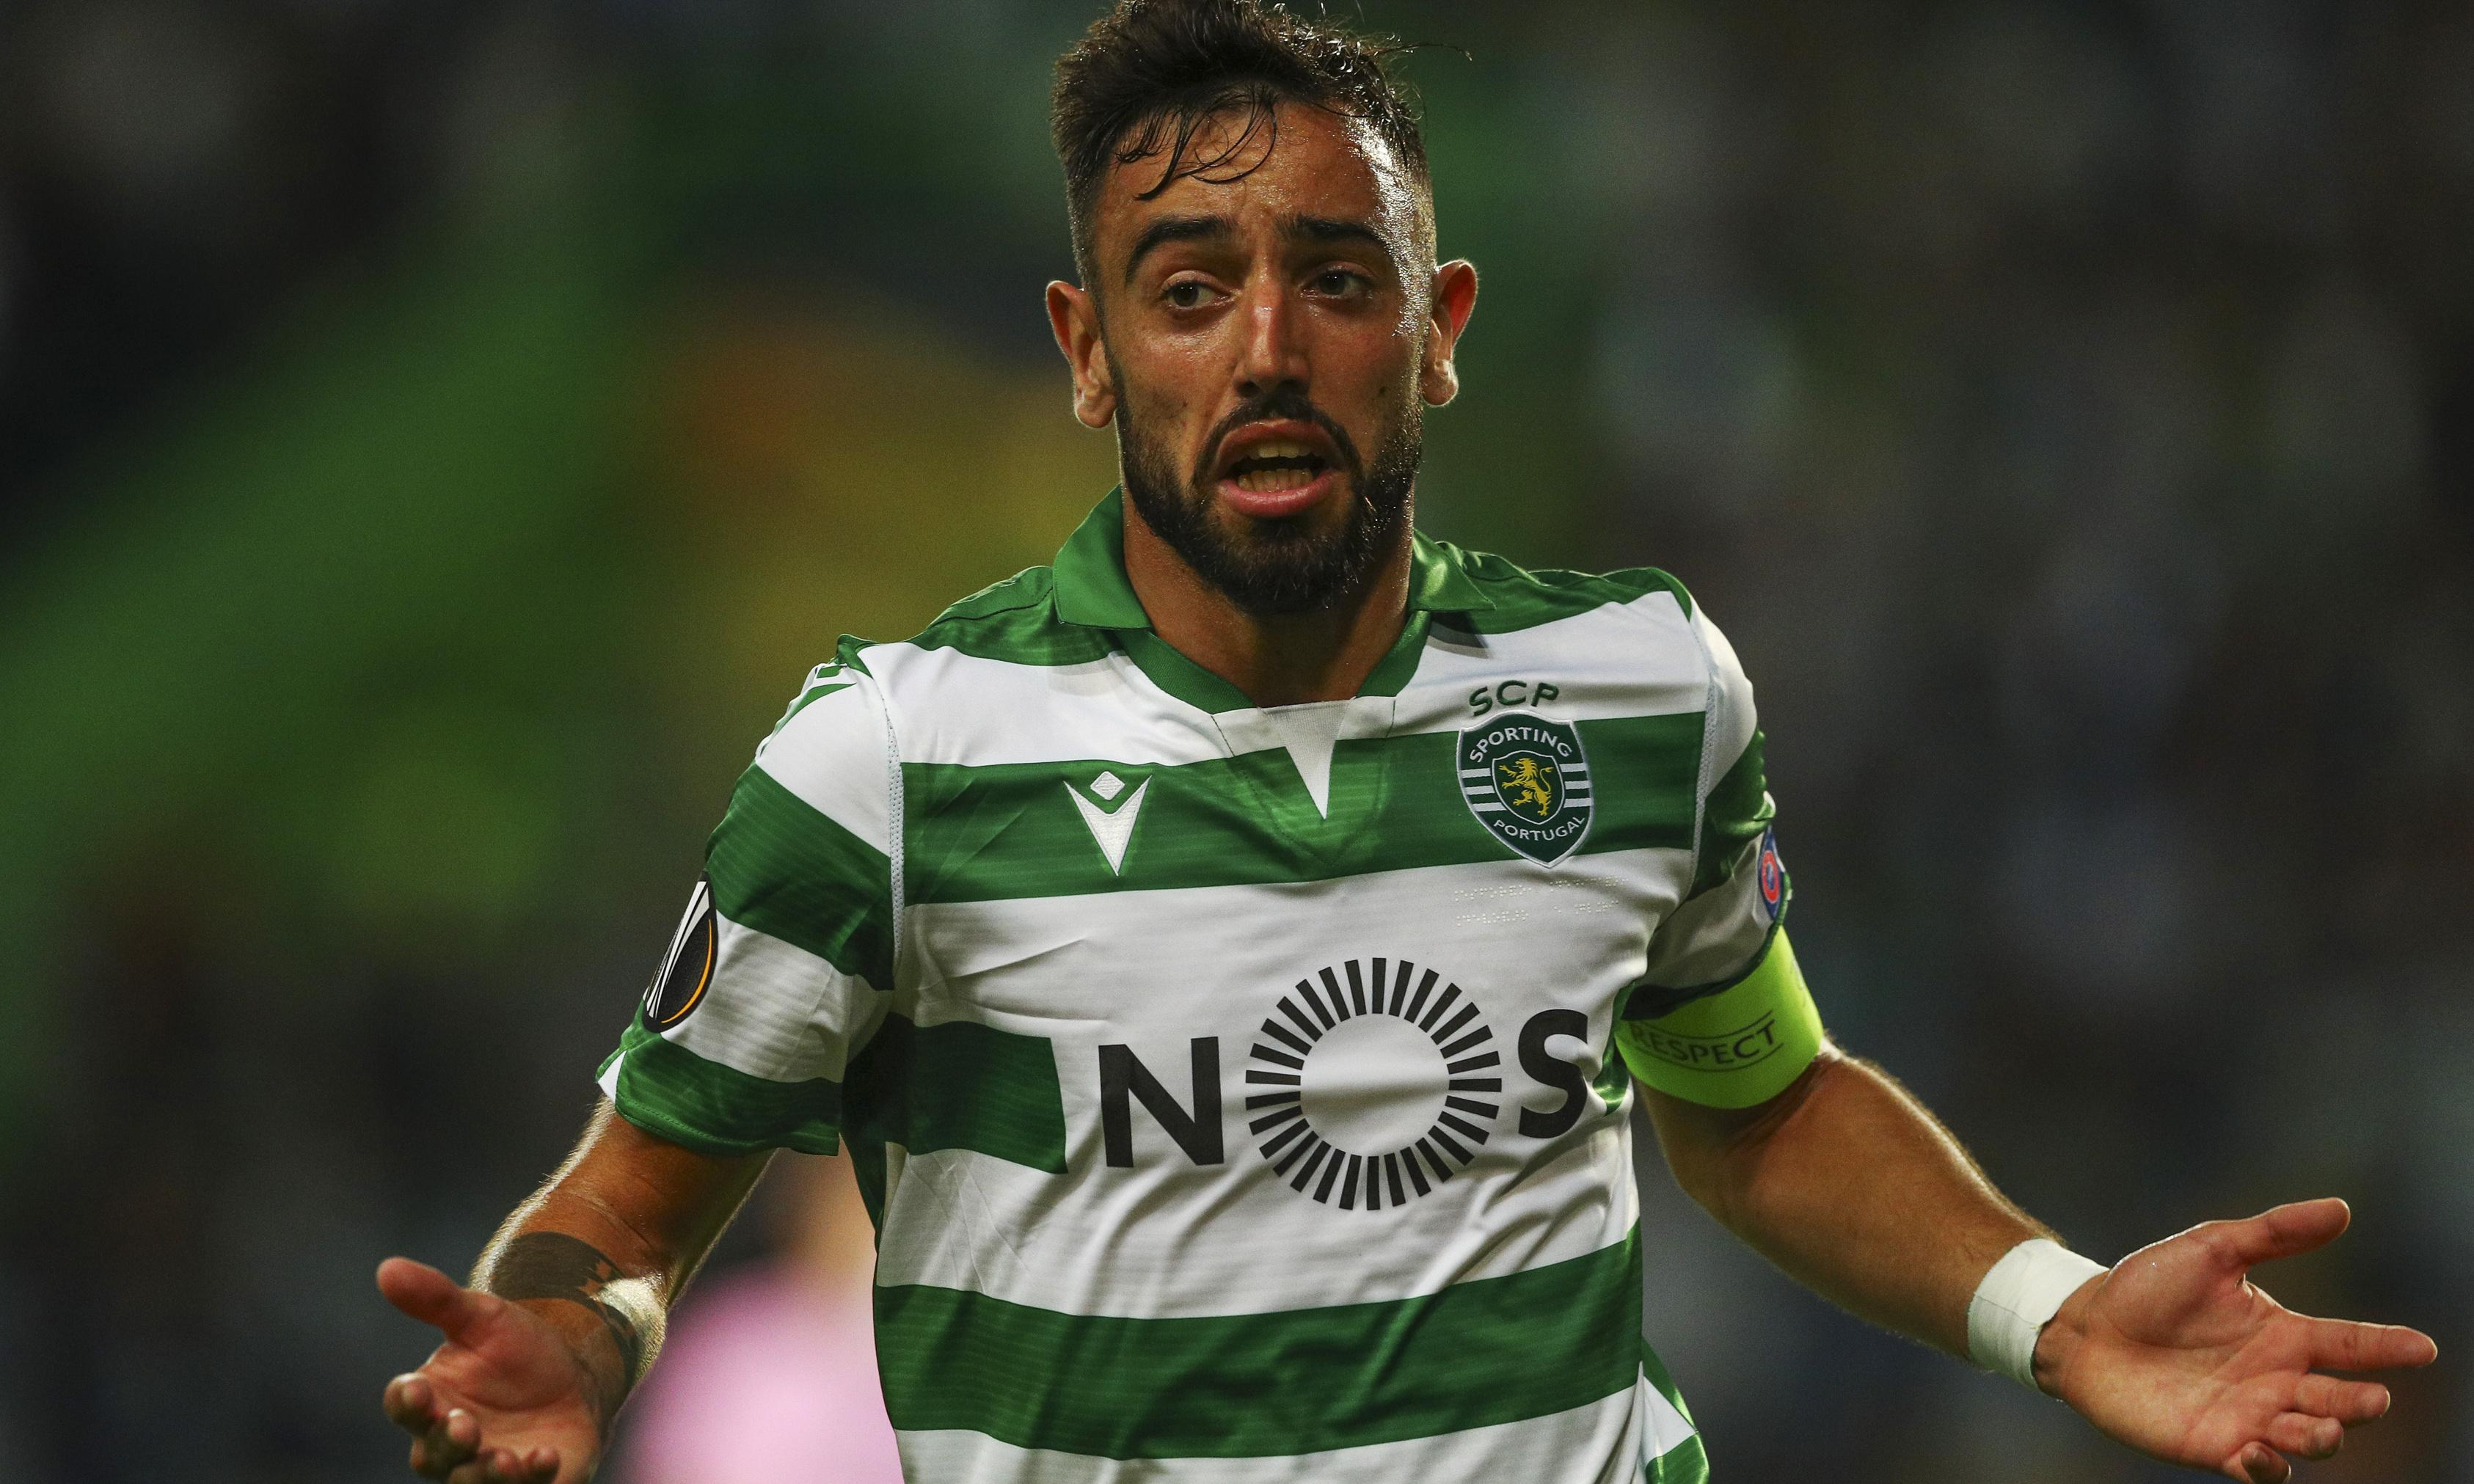 Football transfer rumours: Tottenham want Fernandes, Aarons and Mateta?